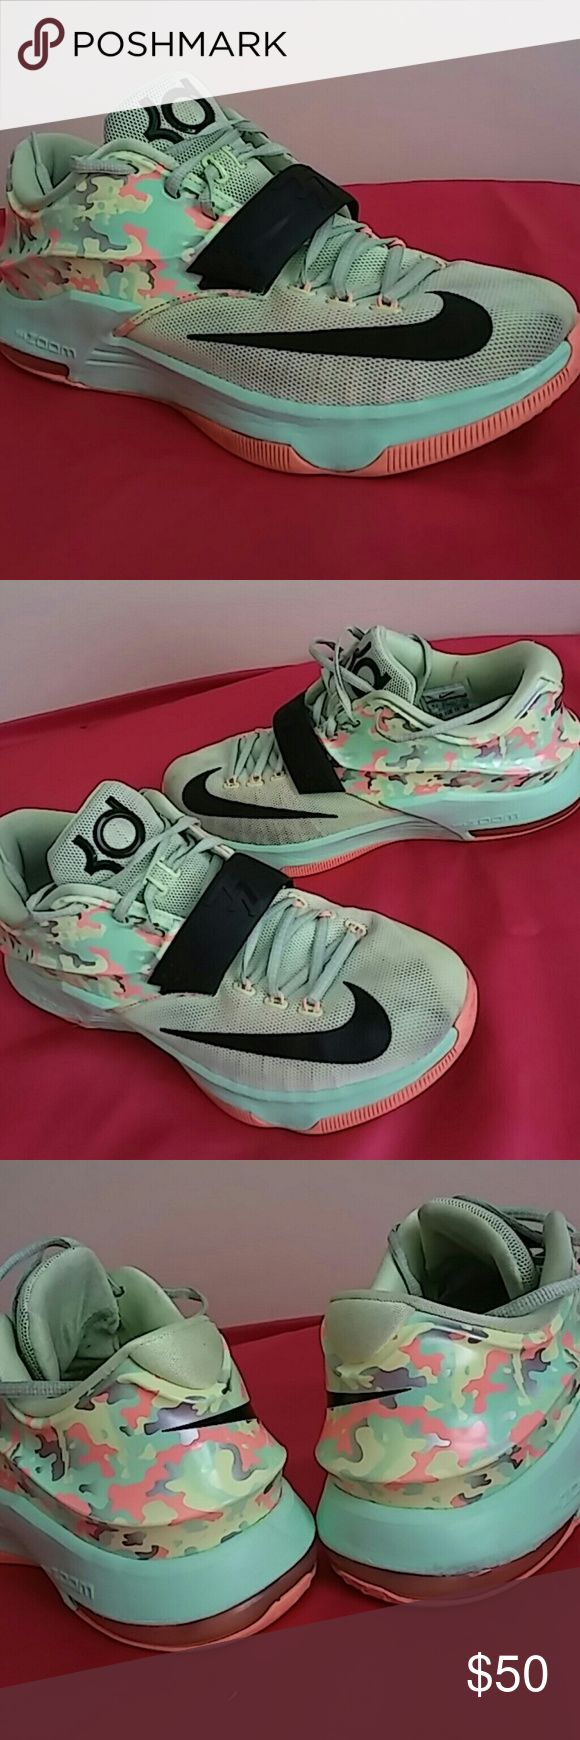 Nike Kd 7 Easter #653996 304 Shoes in awesome condition and shape. I will rate this at 8.5/10. Very well nicely taken care of. Might need just a little cleaning from the insoles. Nike Shoes Sneakers